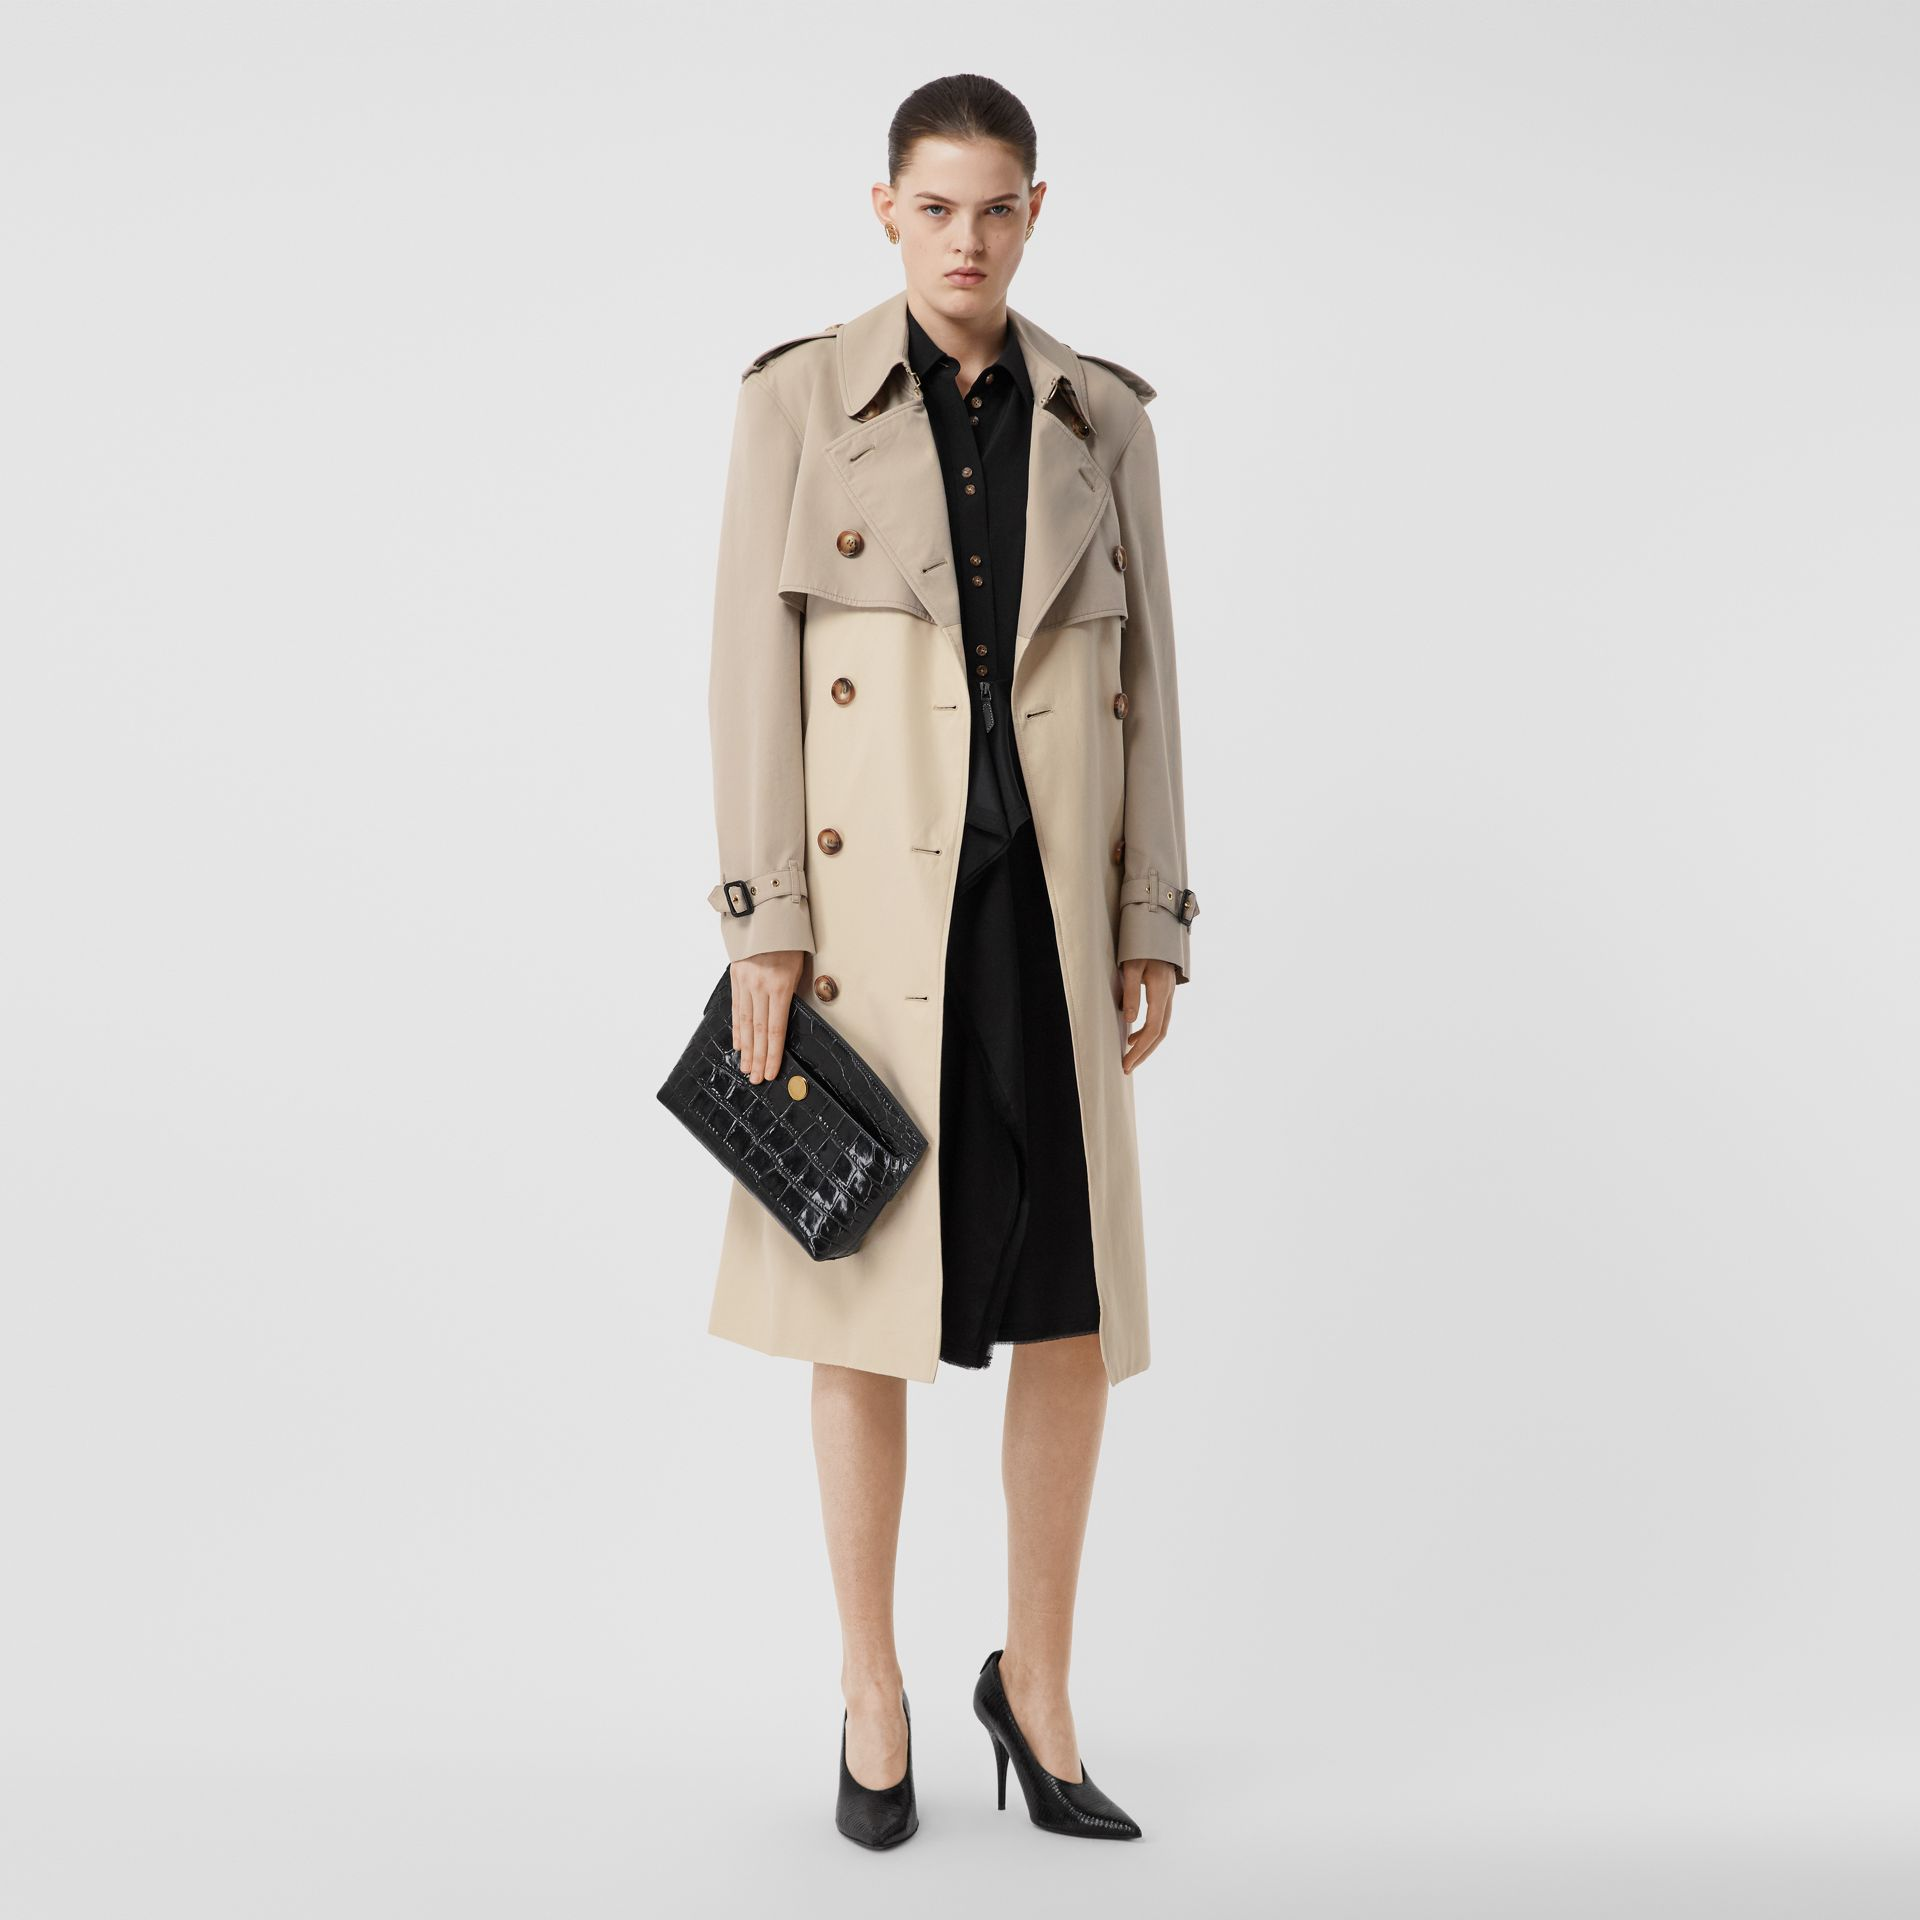 Two-tone Reconstructed Trench Coat in Light Sand - Women | Burberry - gallery image 5